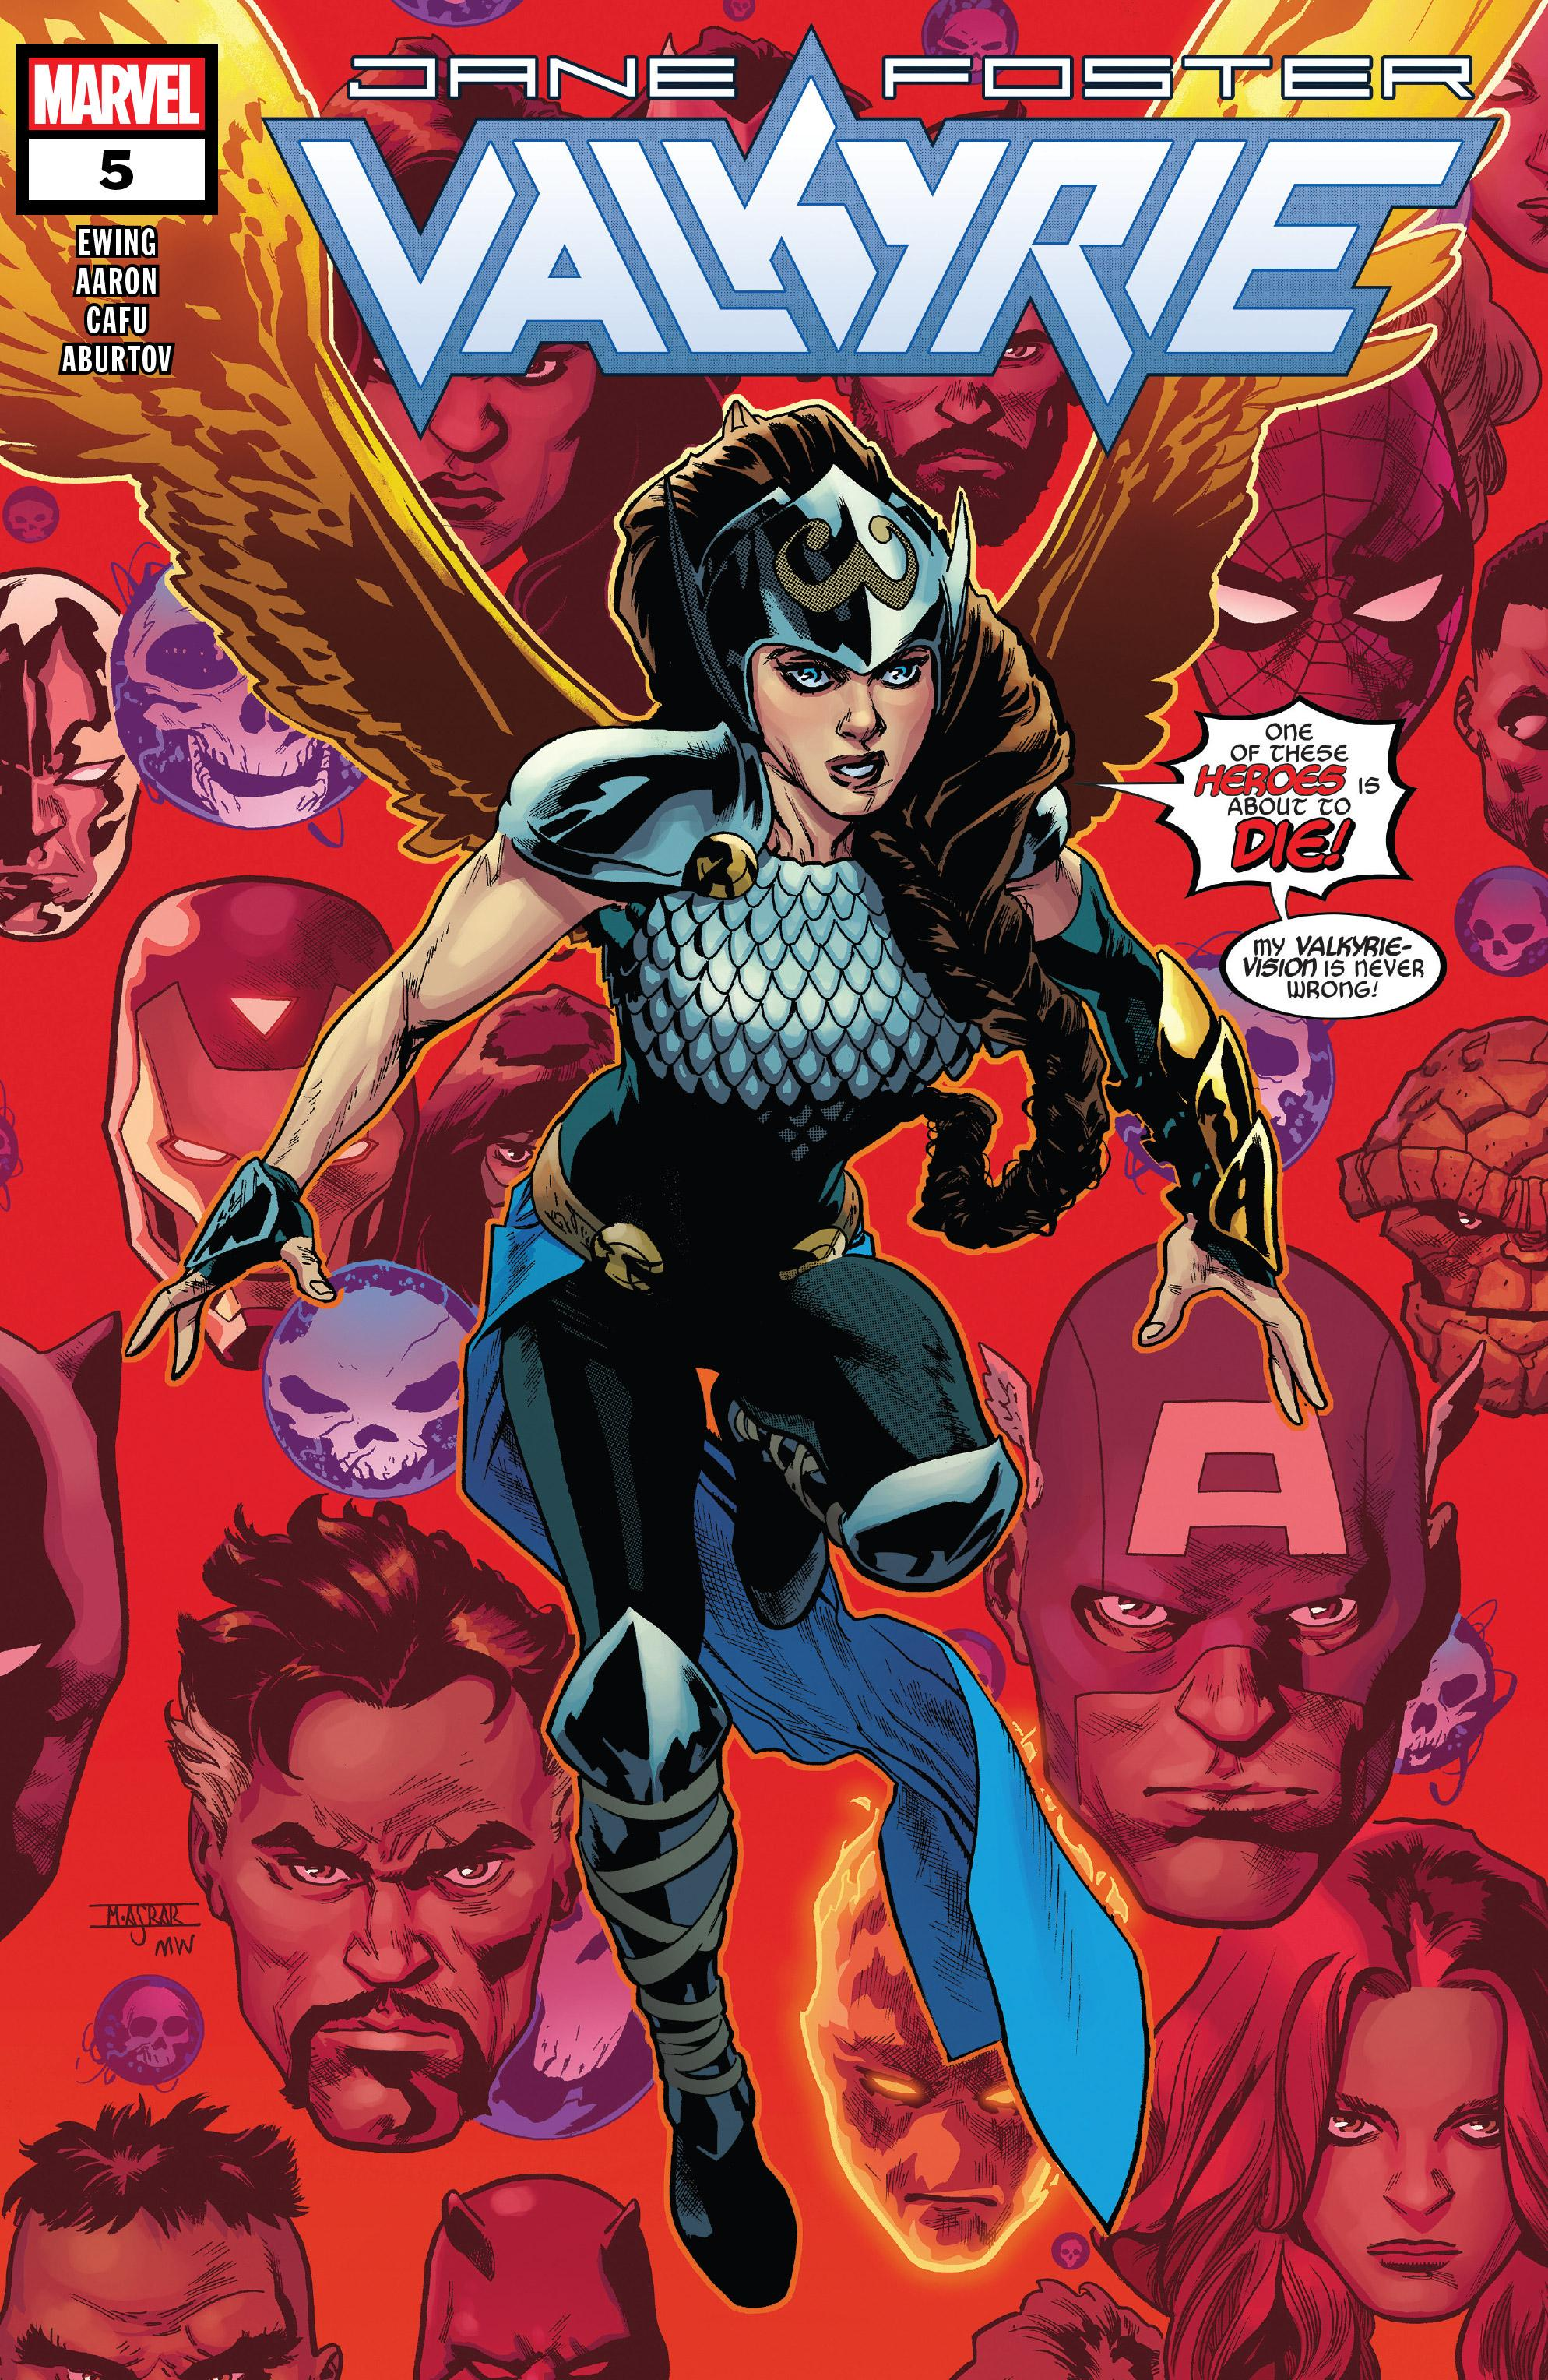 Valkyrie: Jane Foster Vol 1 5